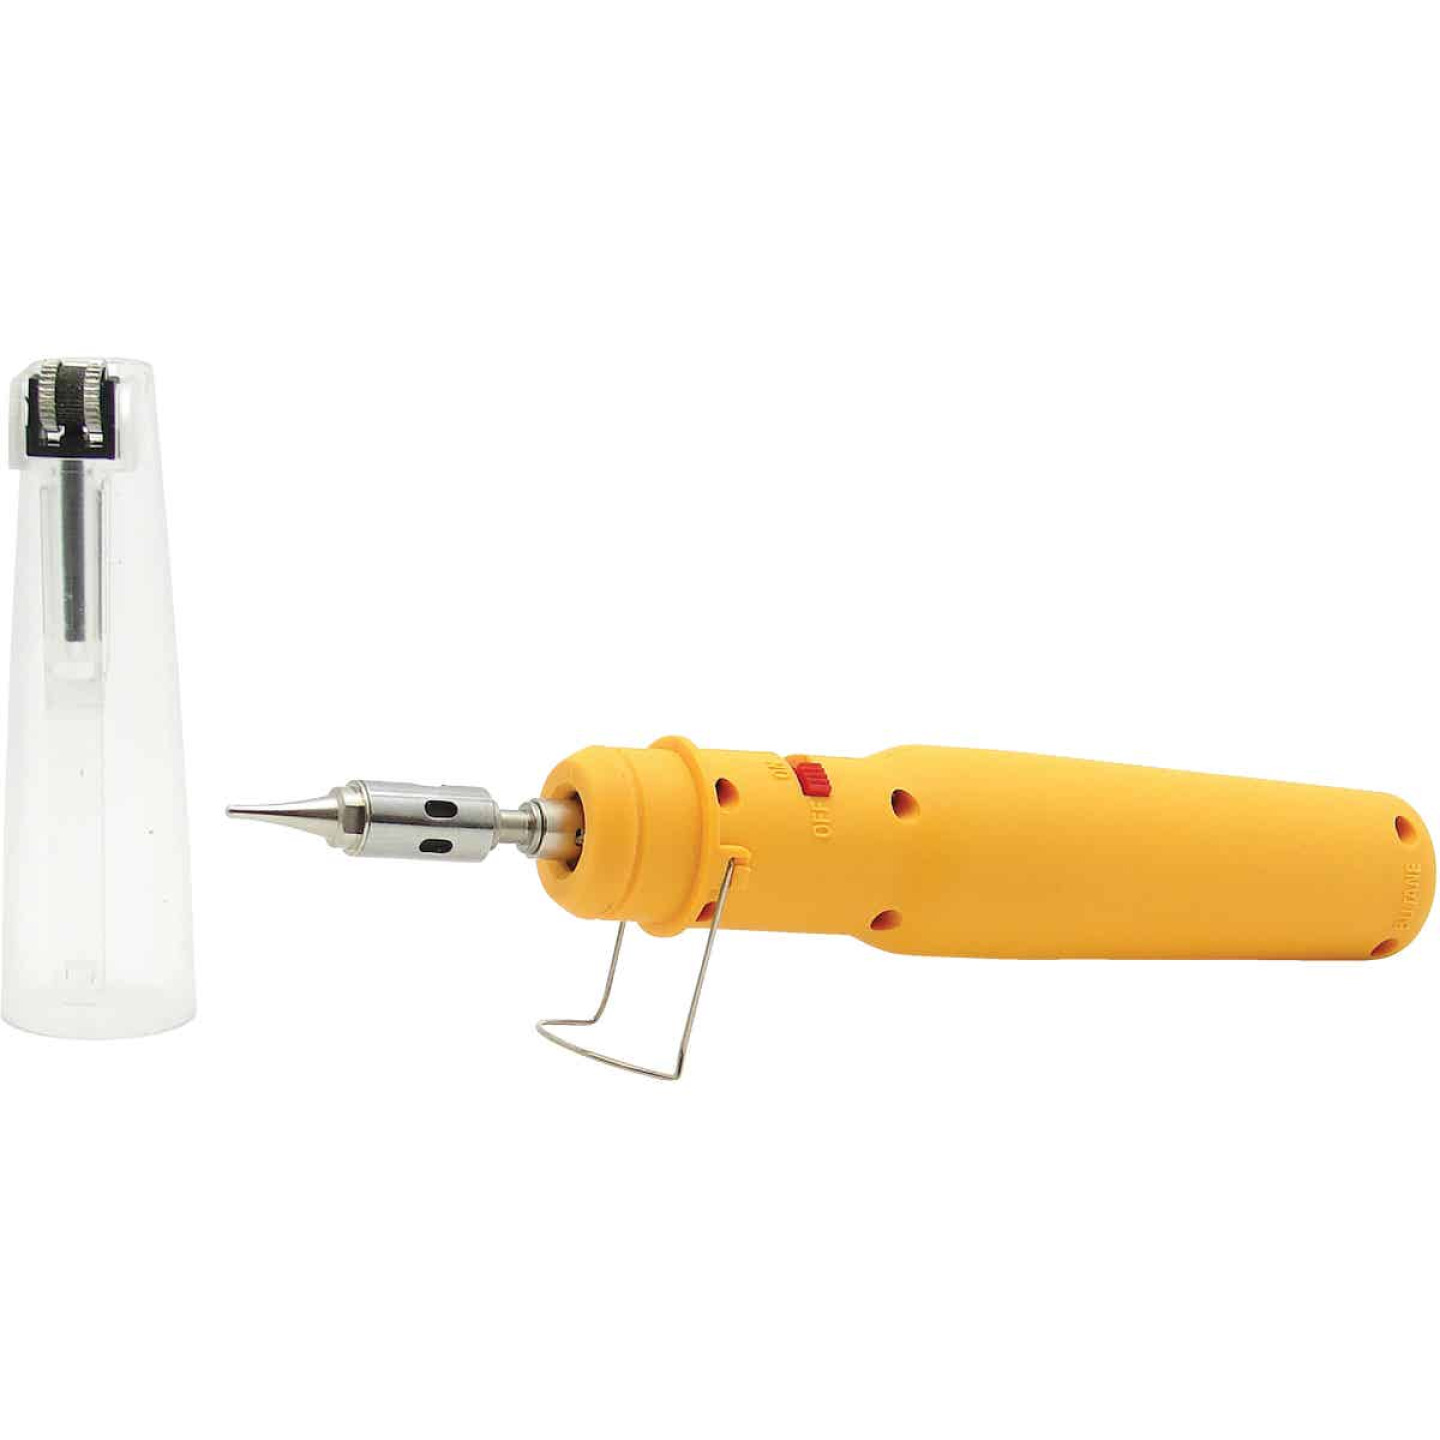 Wall Lenk 30 to 70W Butane Soldering Iron Image 1